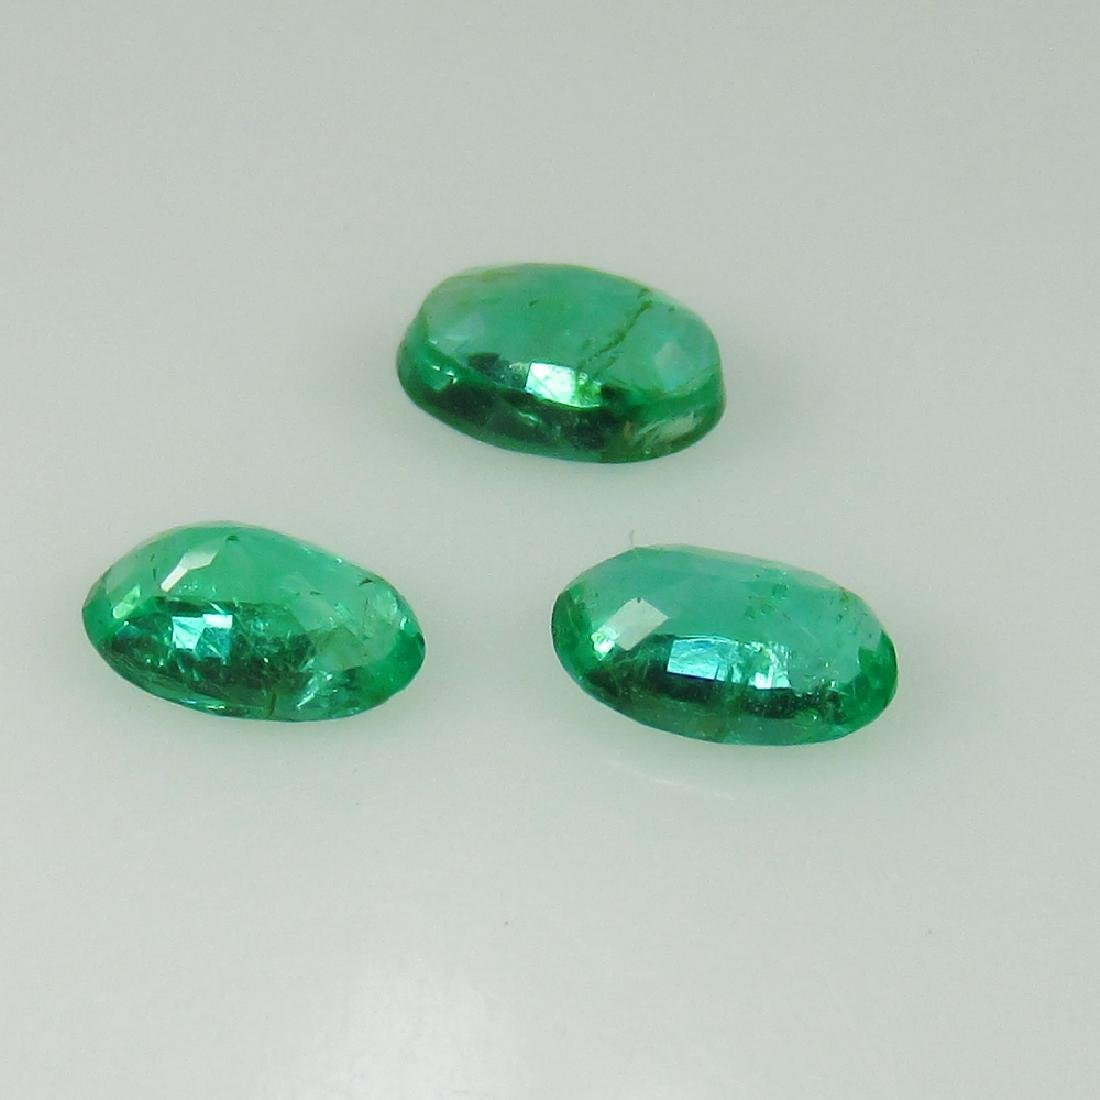 0.66 Ct Genuine Zambian Emerald Oval Cut - 2